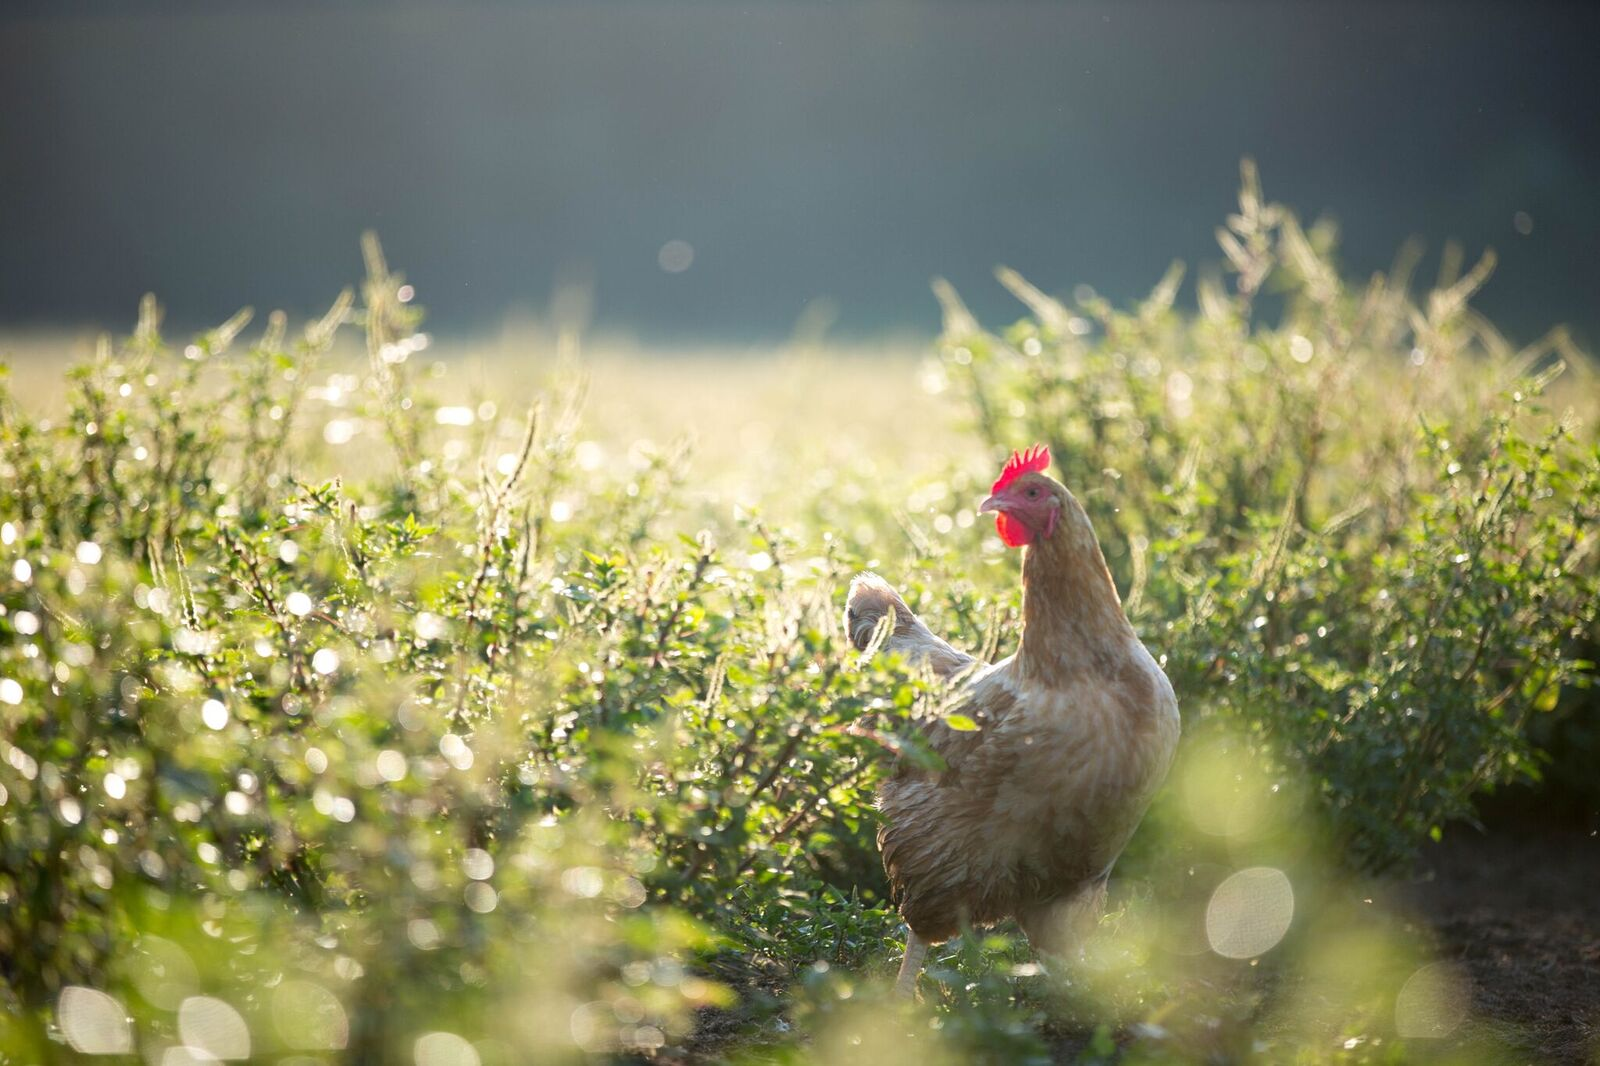 Pastured chicken eggs and meat are produced by our pastured poultry